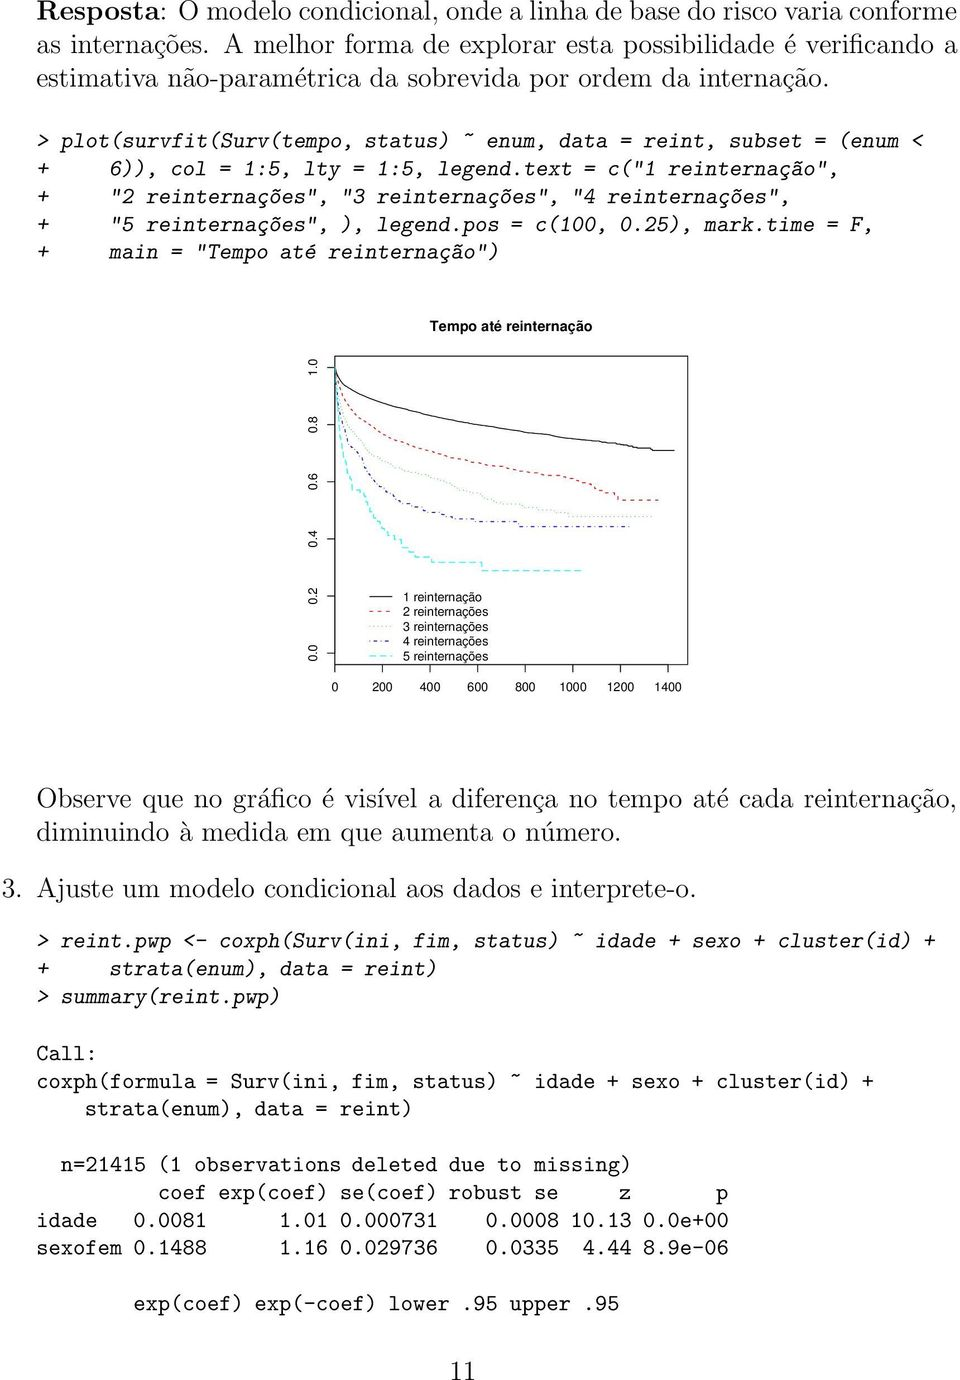 > plot(survfit(surv(tempo, status) ~ enum, data = reint, subset = (enum < + 6)), col = 1:5, lty = 1:5, legend.